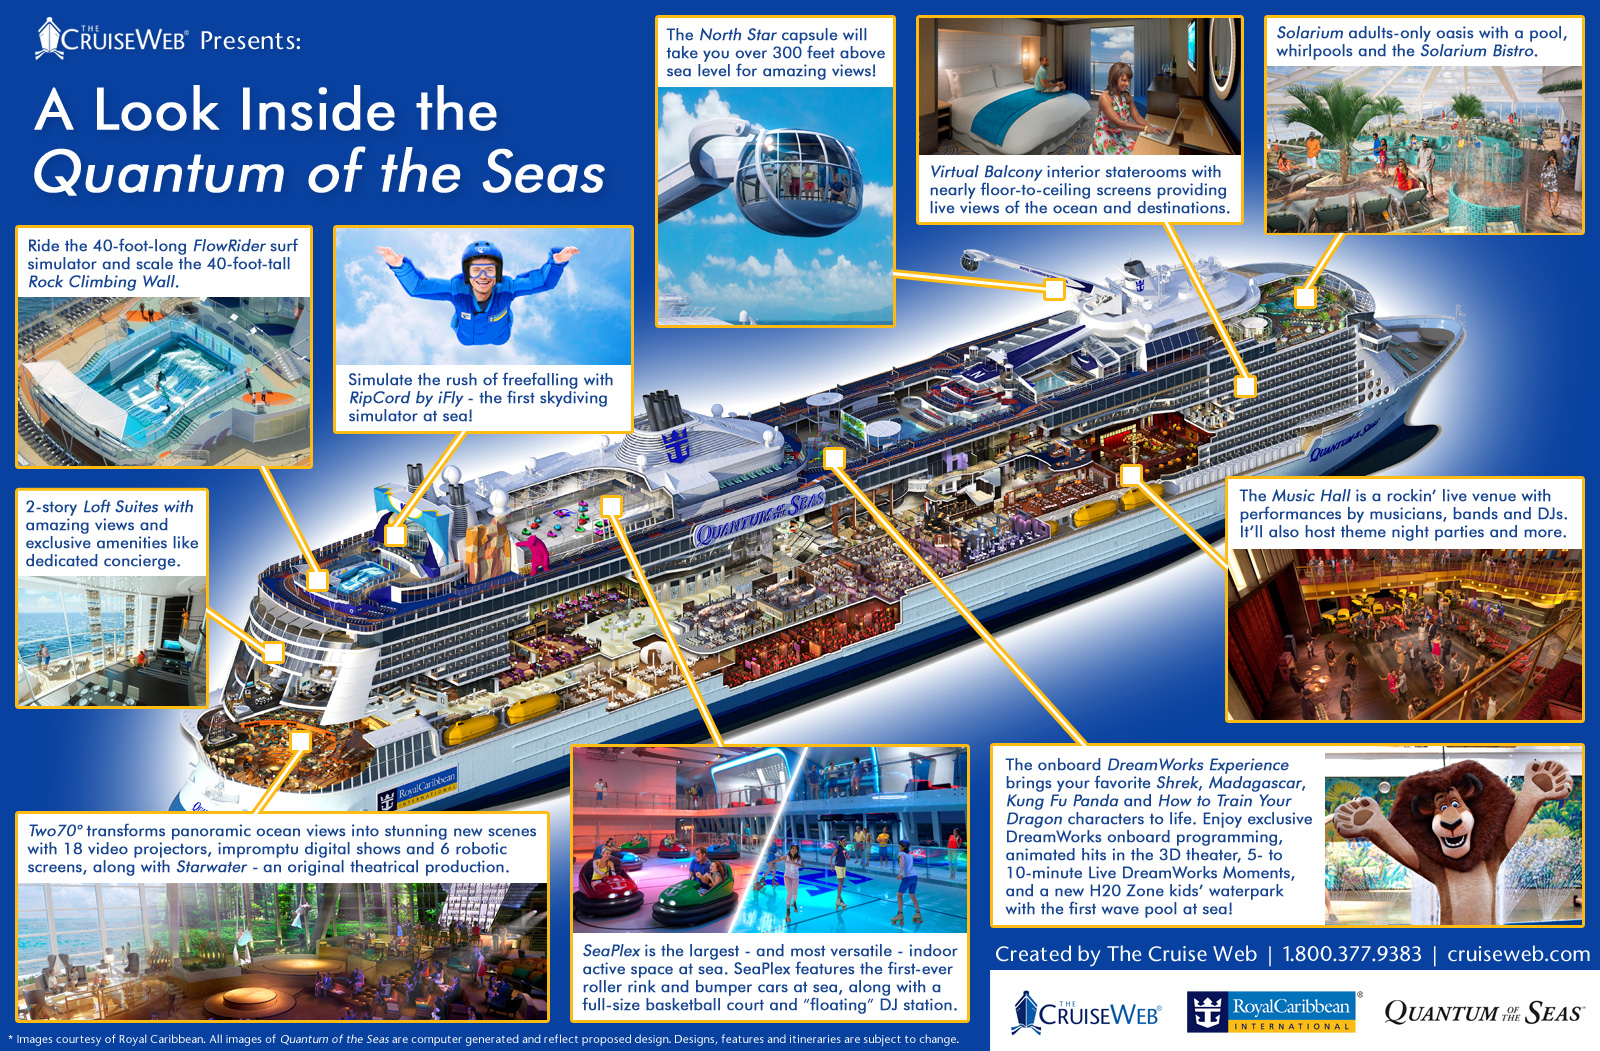 A Look Inside the Quantum of the Seas: An Infographic